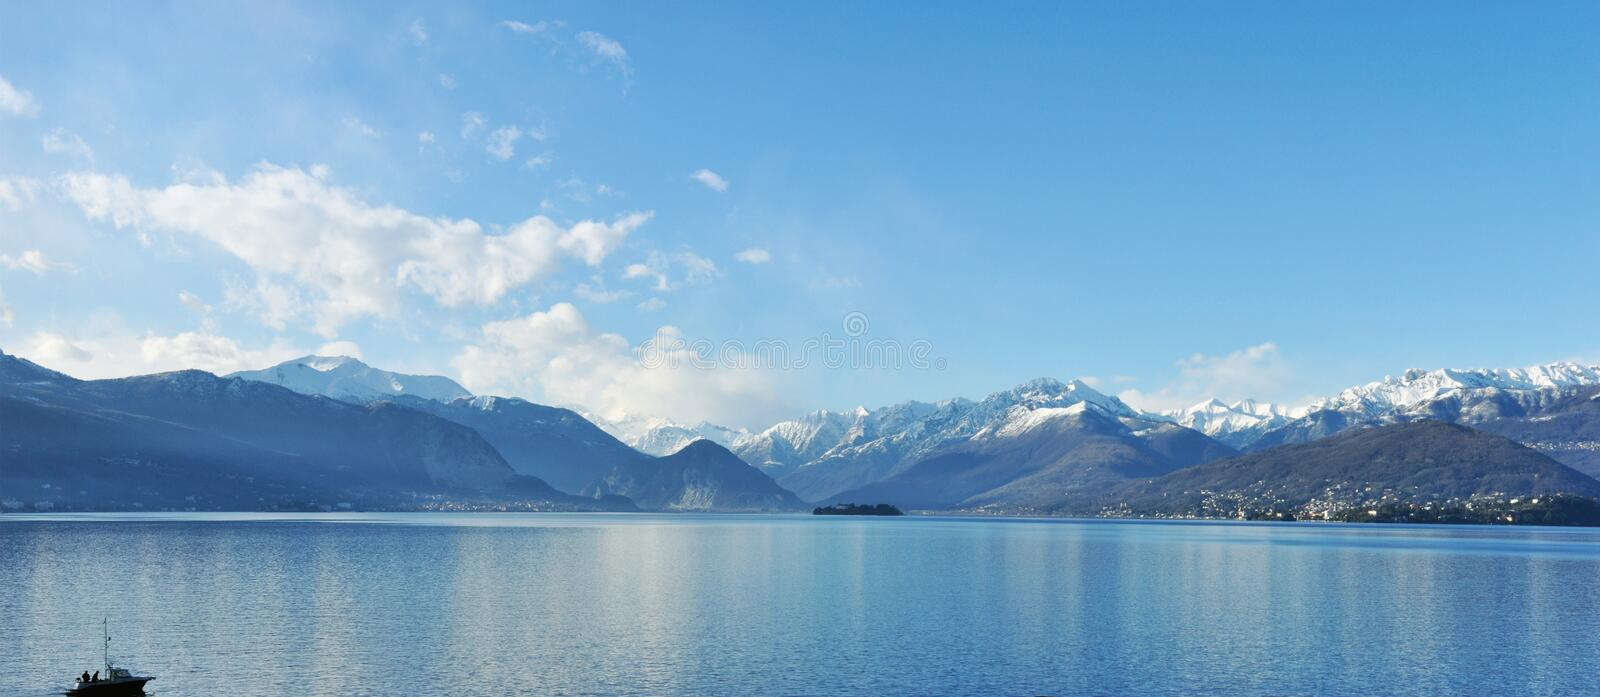 Maggiore lake panorama royalty free stock photos